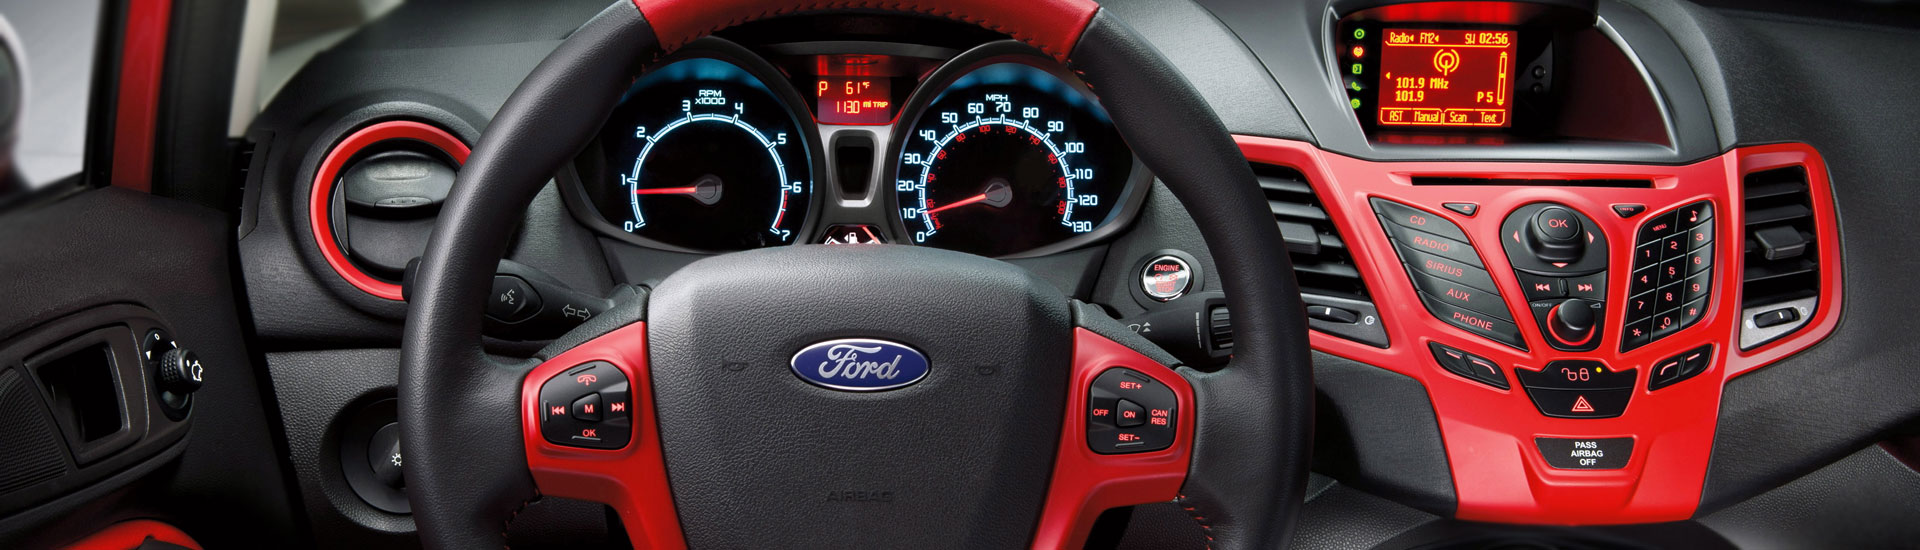 2014 Ford E-250 Custom Dash Kits